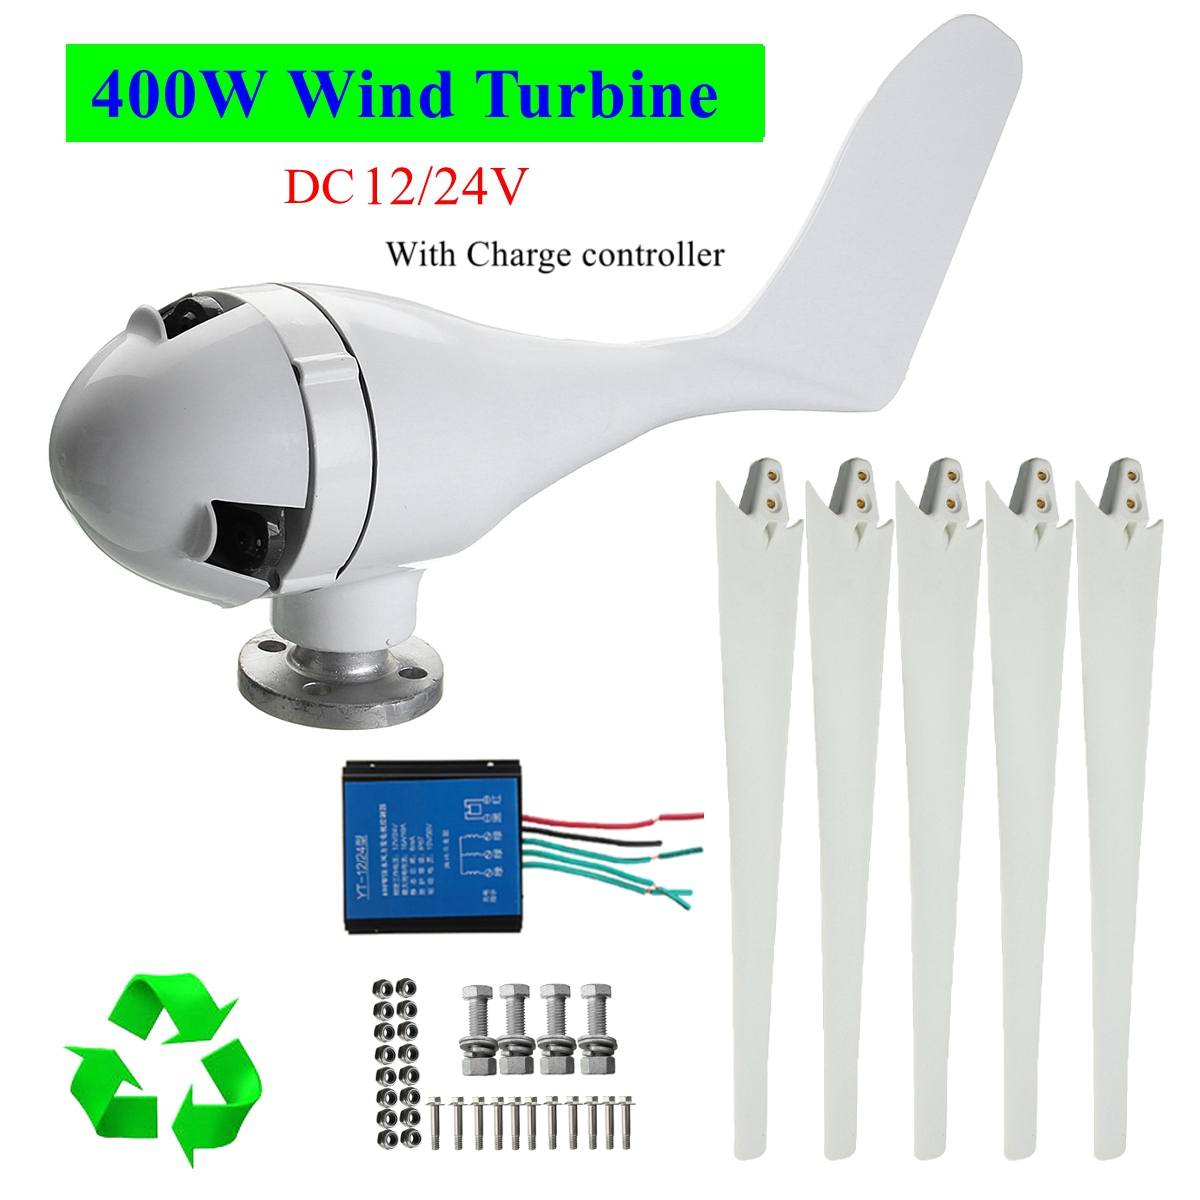 5 Blade 400W Wind Turbine Generator DC 12V/24V Power Supply with Charge Controller